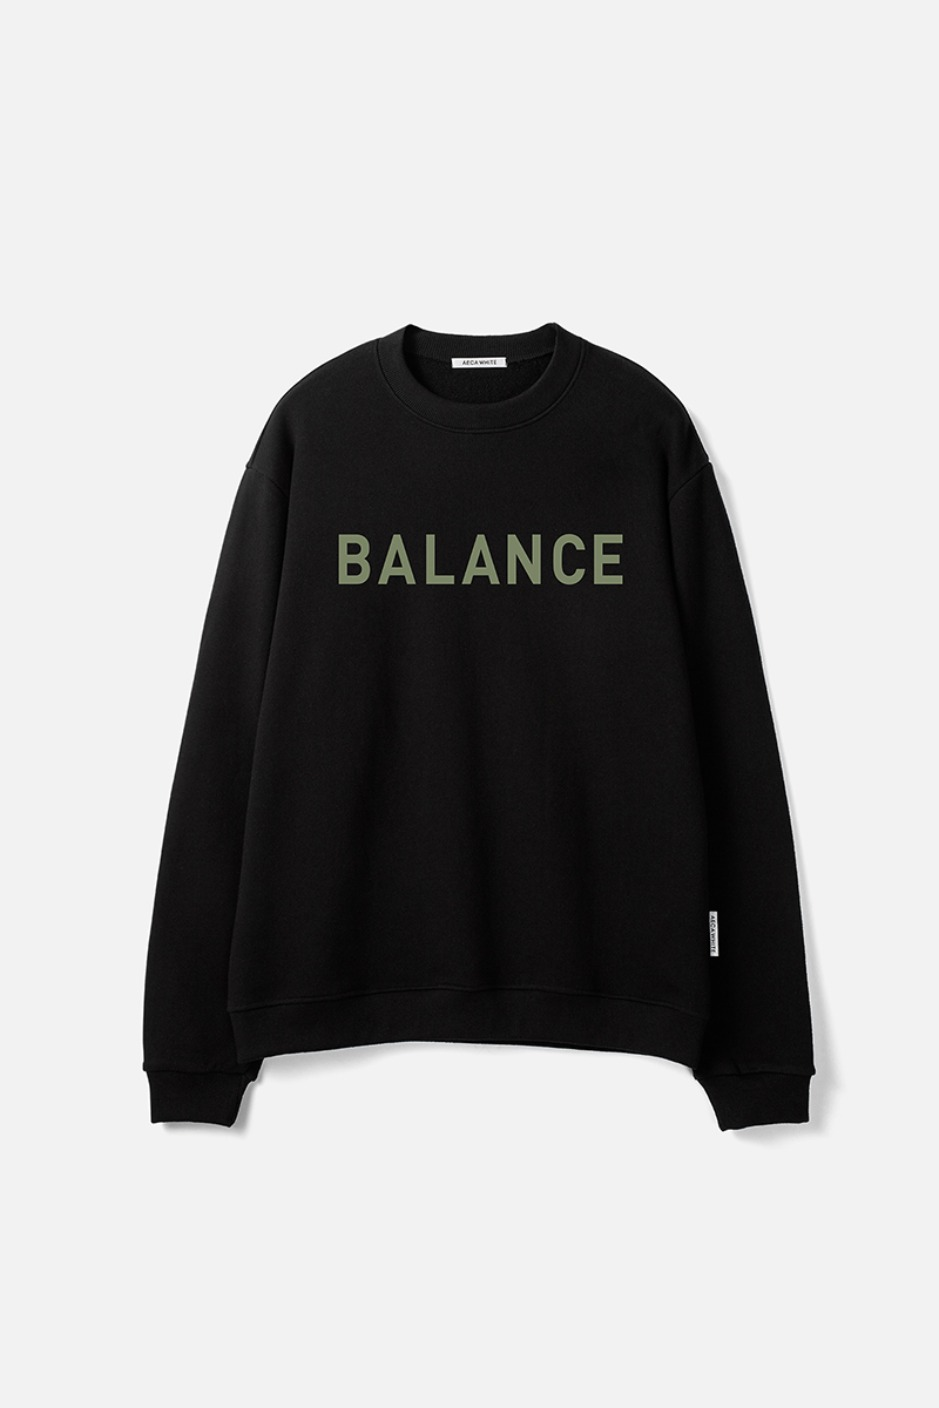 BALANCE SWEATSHIRT-BLACK